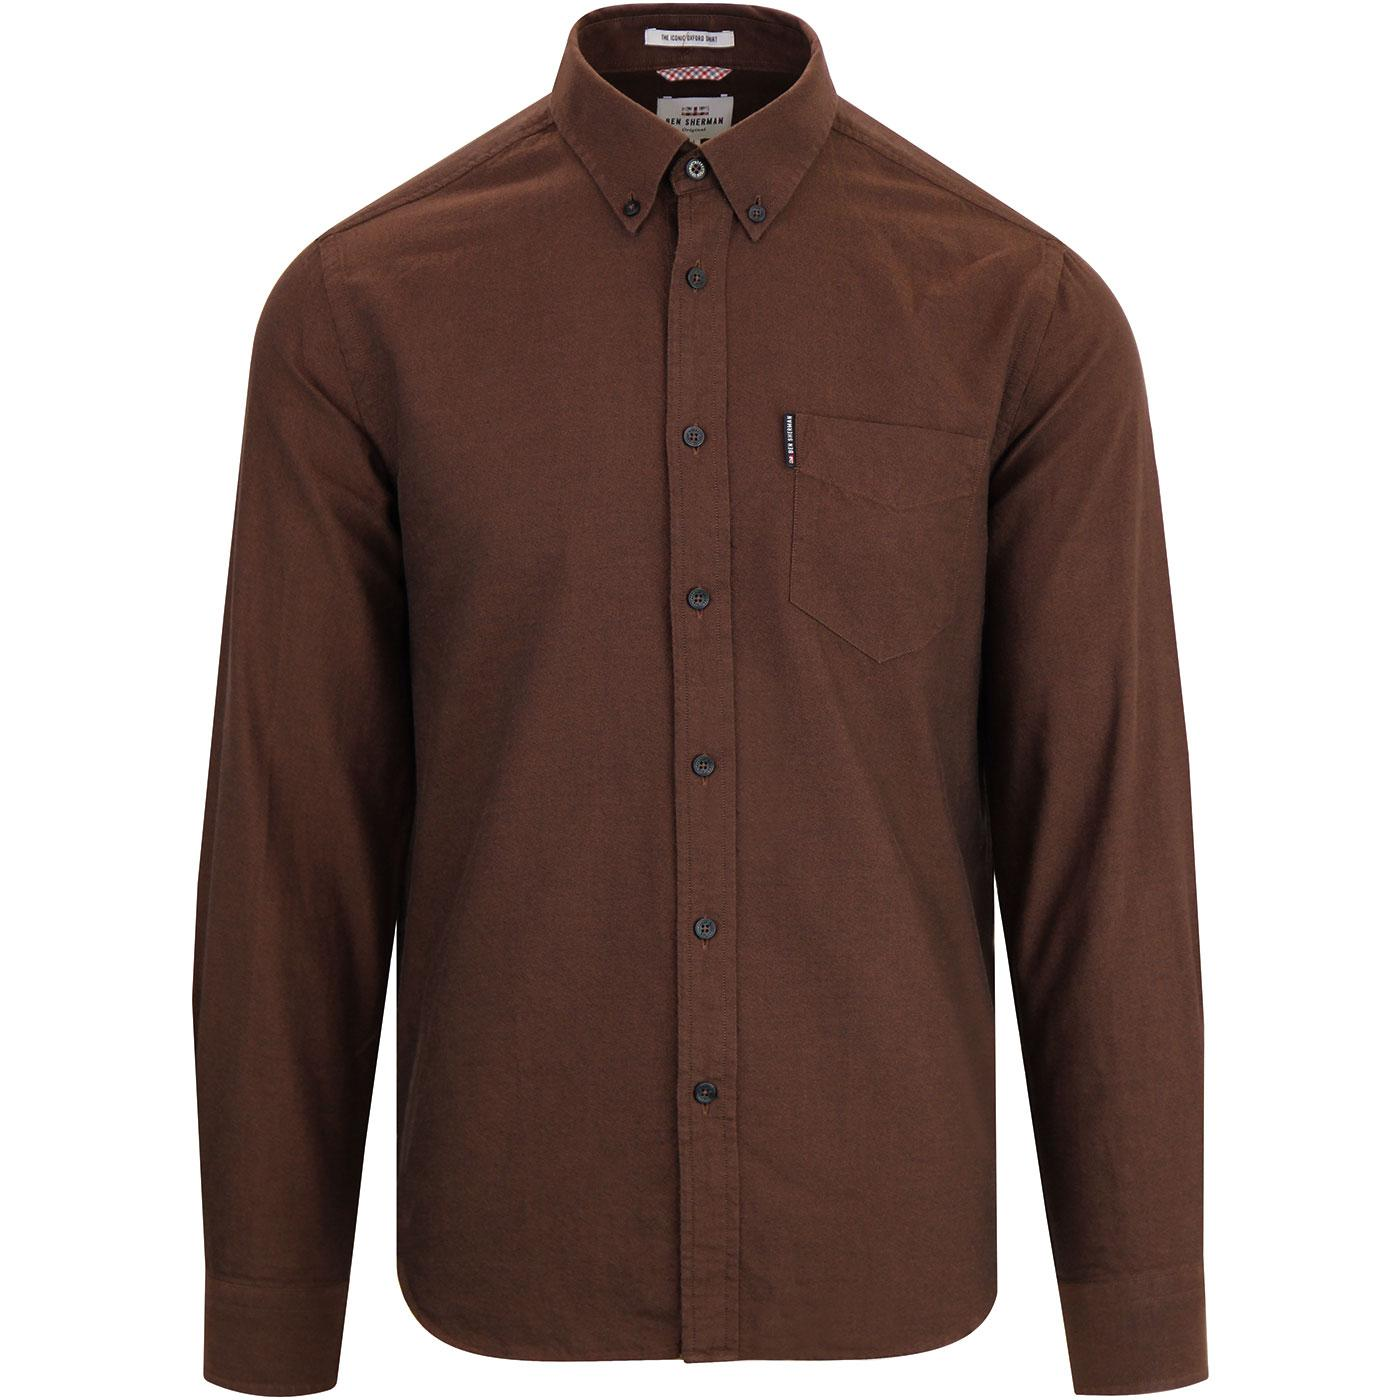 BEN SHERMAN Mod Button Down Oxford Shirt RUST